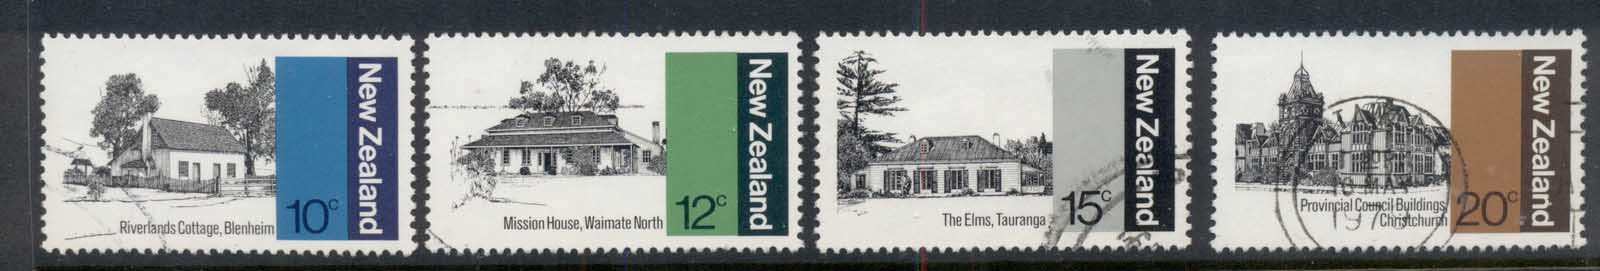 New Zealand 1979 Architecture FU